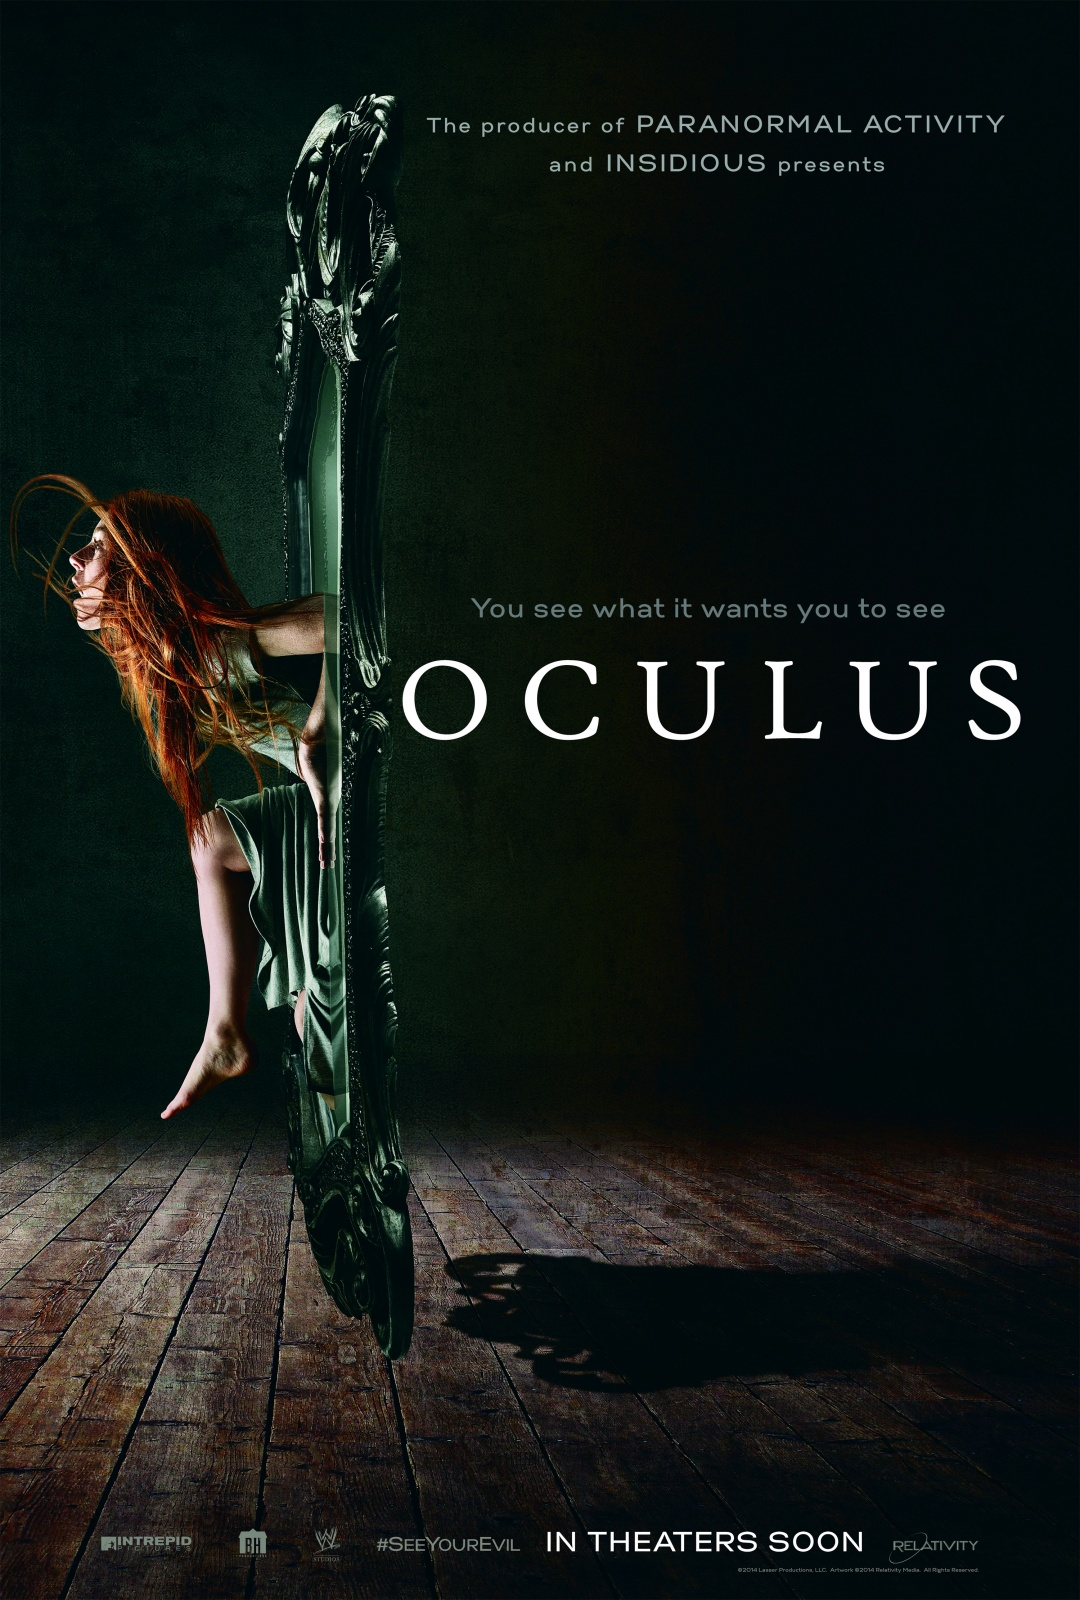 Oculus Movie Film Trailer 2014 - Sinopsis